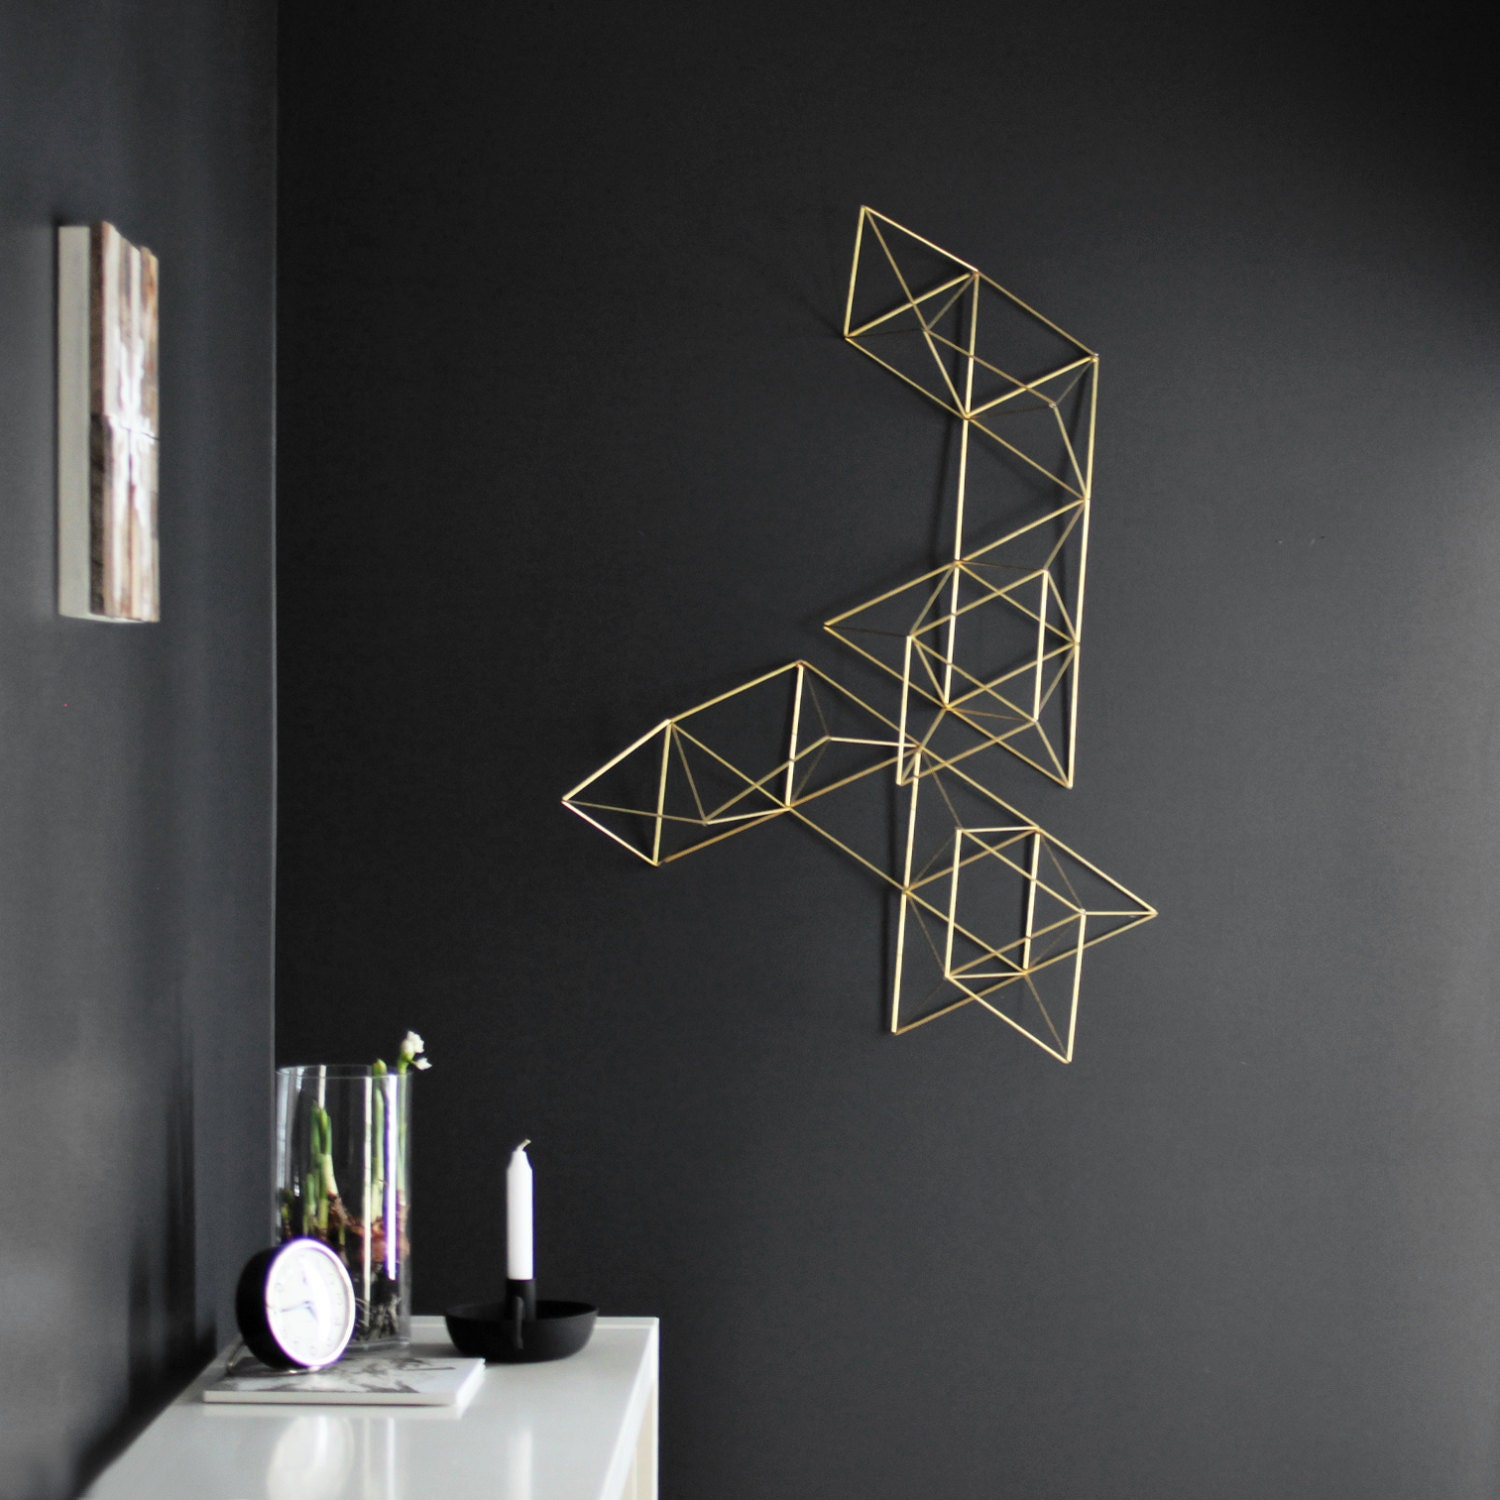 New Design Wall Art : Large brass abstract himmeli no wall sculpture